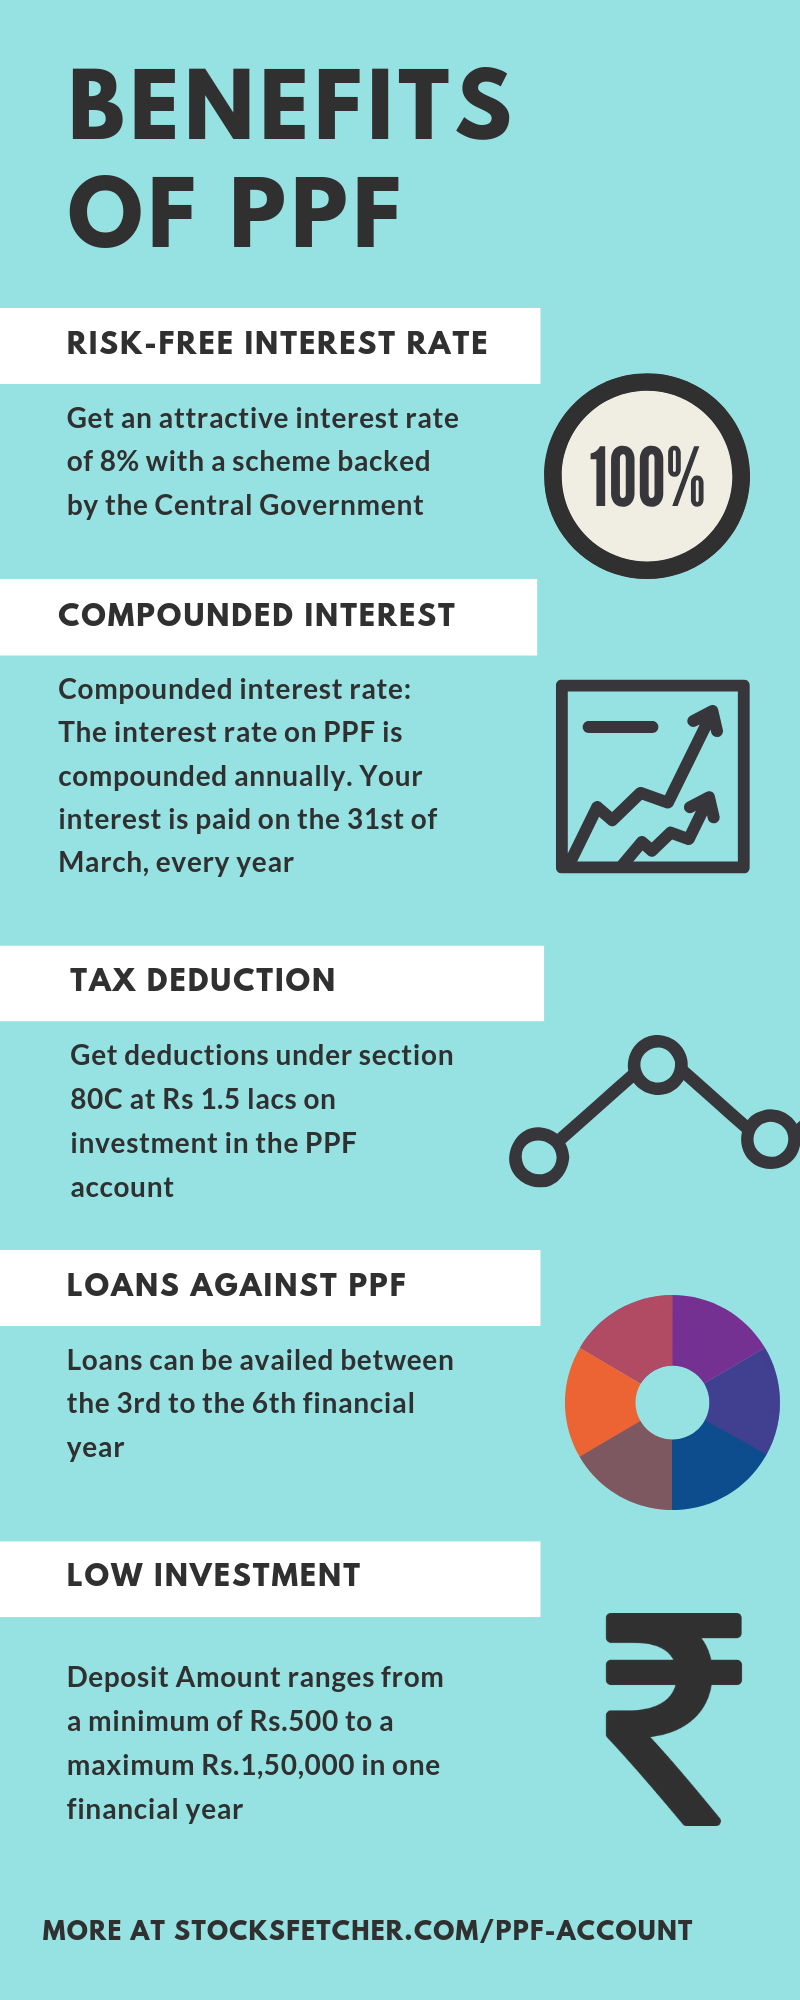 Benefits of PPF